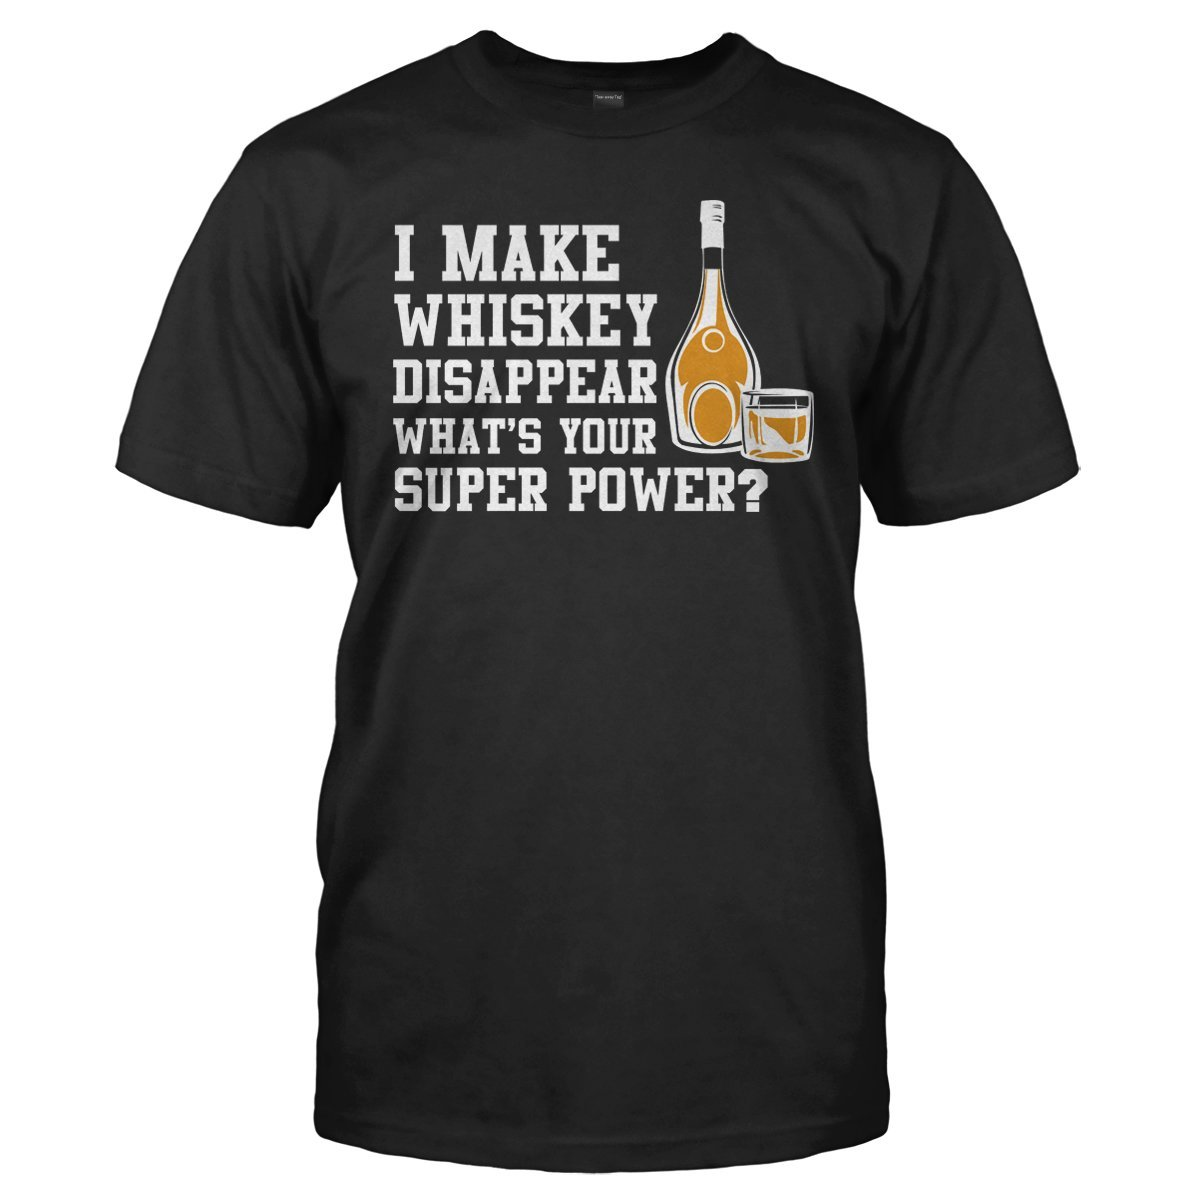 I Make Whiskey Disappear - T Shirt